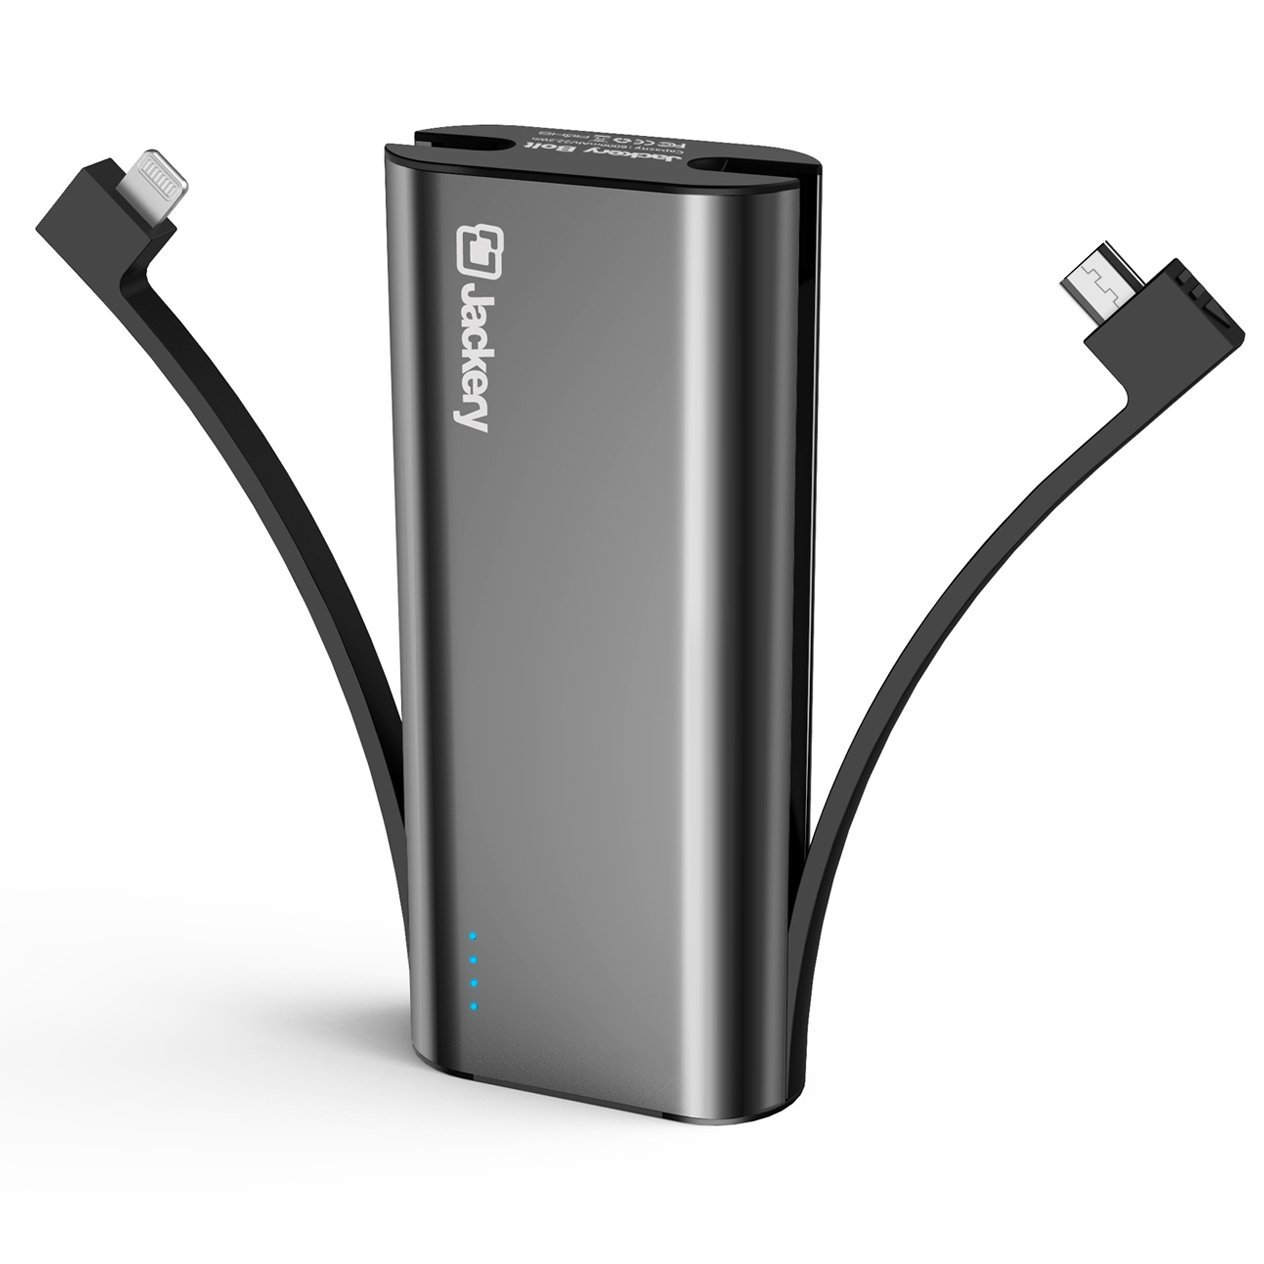 The [Jackery Bolt](https://www.amazon.com/dp/B01A6L85CC?tag=toolstoysdeals-20) is one of the best USB battery packs on the market.